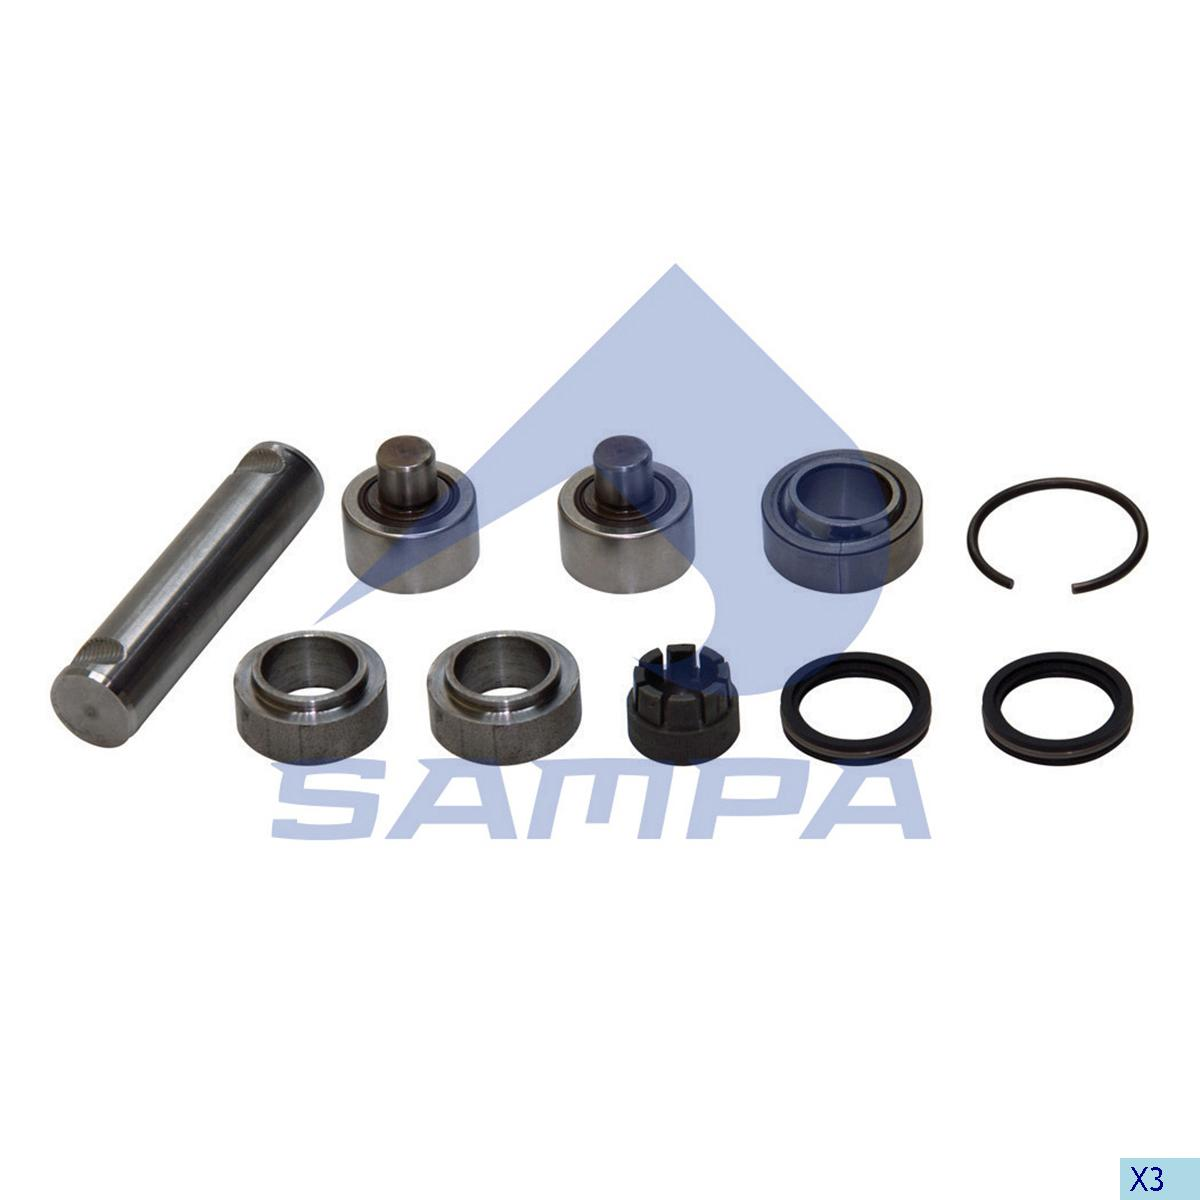 Repair Kit, Clutch Fork, Daf, Clutch